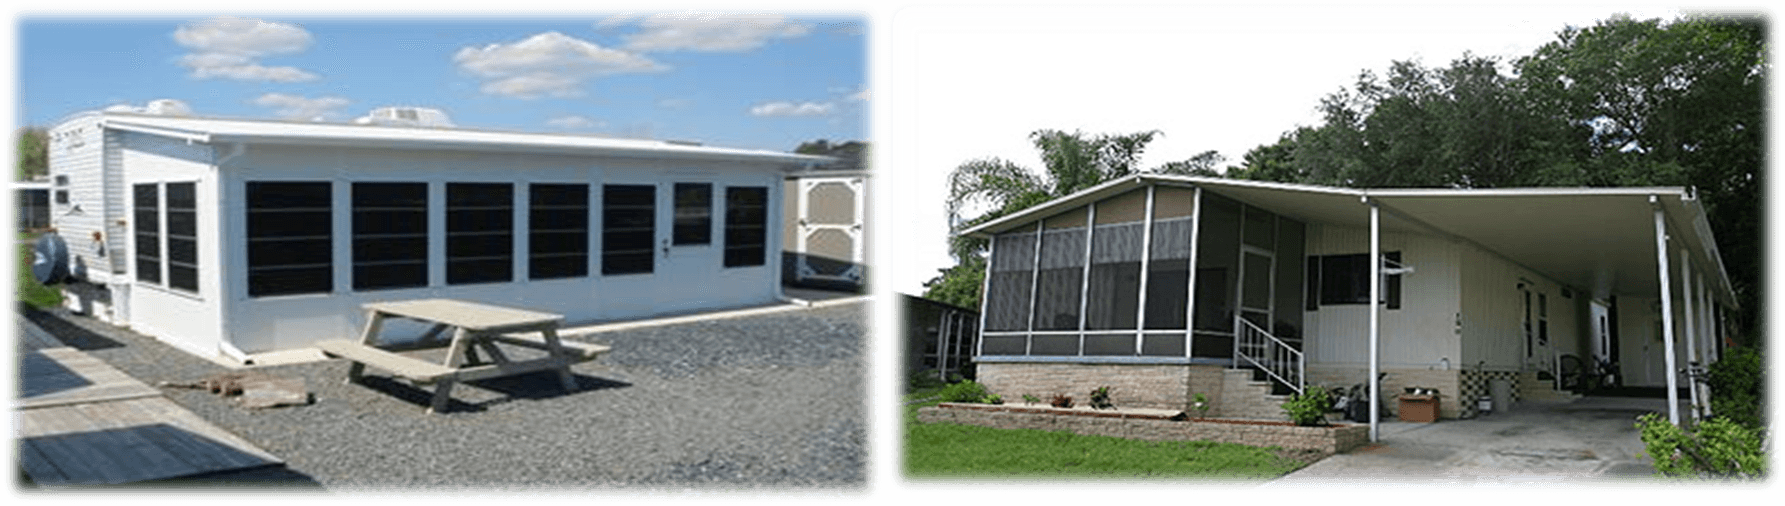 Aluminum Awnings For Shade M Amp M Home Supply Warehouse